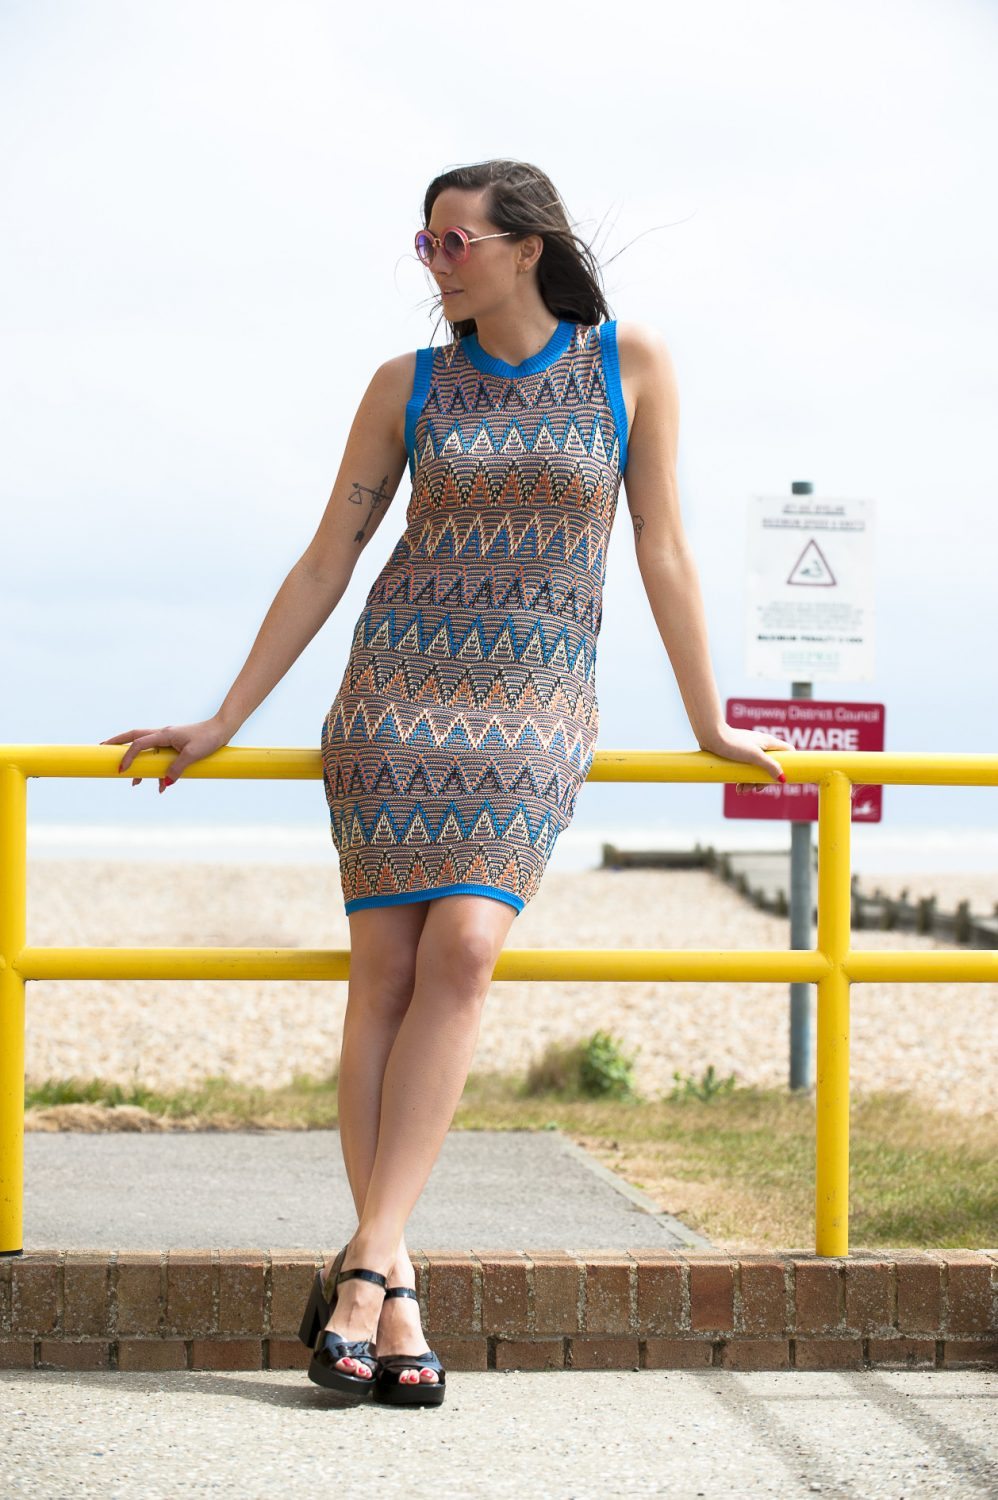 Shine knitted dress, £59, Reyflector sunglasses, £10, Who's Wearing What Boutique, St Leonards whoswearingwhat-boutique.co.uk; Wonders block heels, £95, Golden Boot, Maidstone thegoldenboot.co.uk